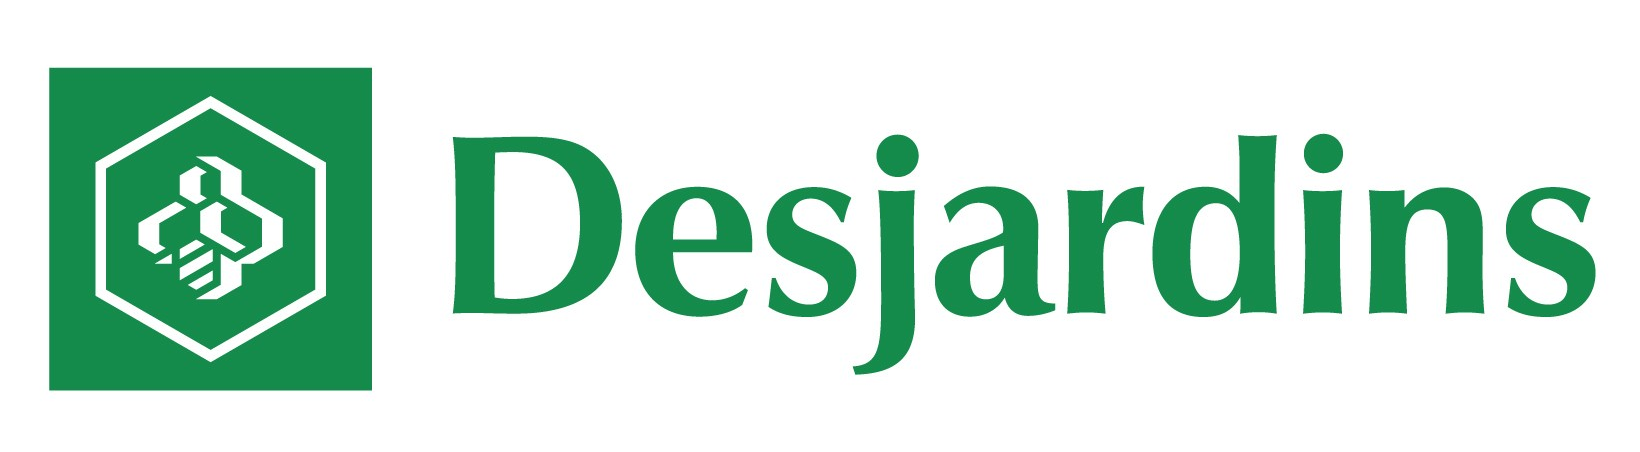 Image result for logo of desjardins